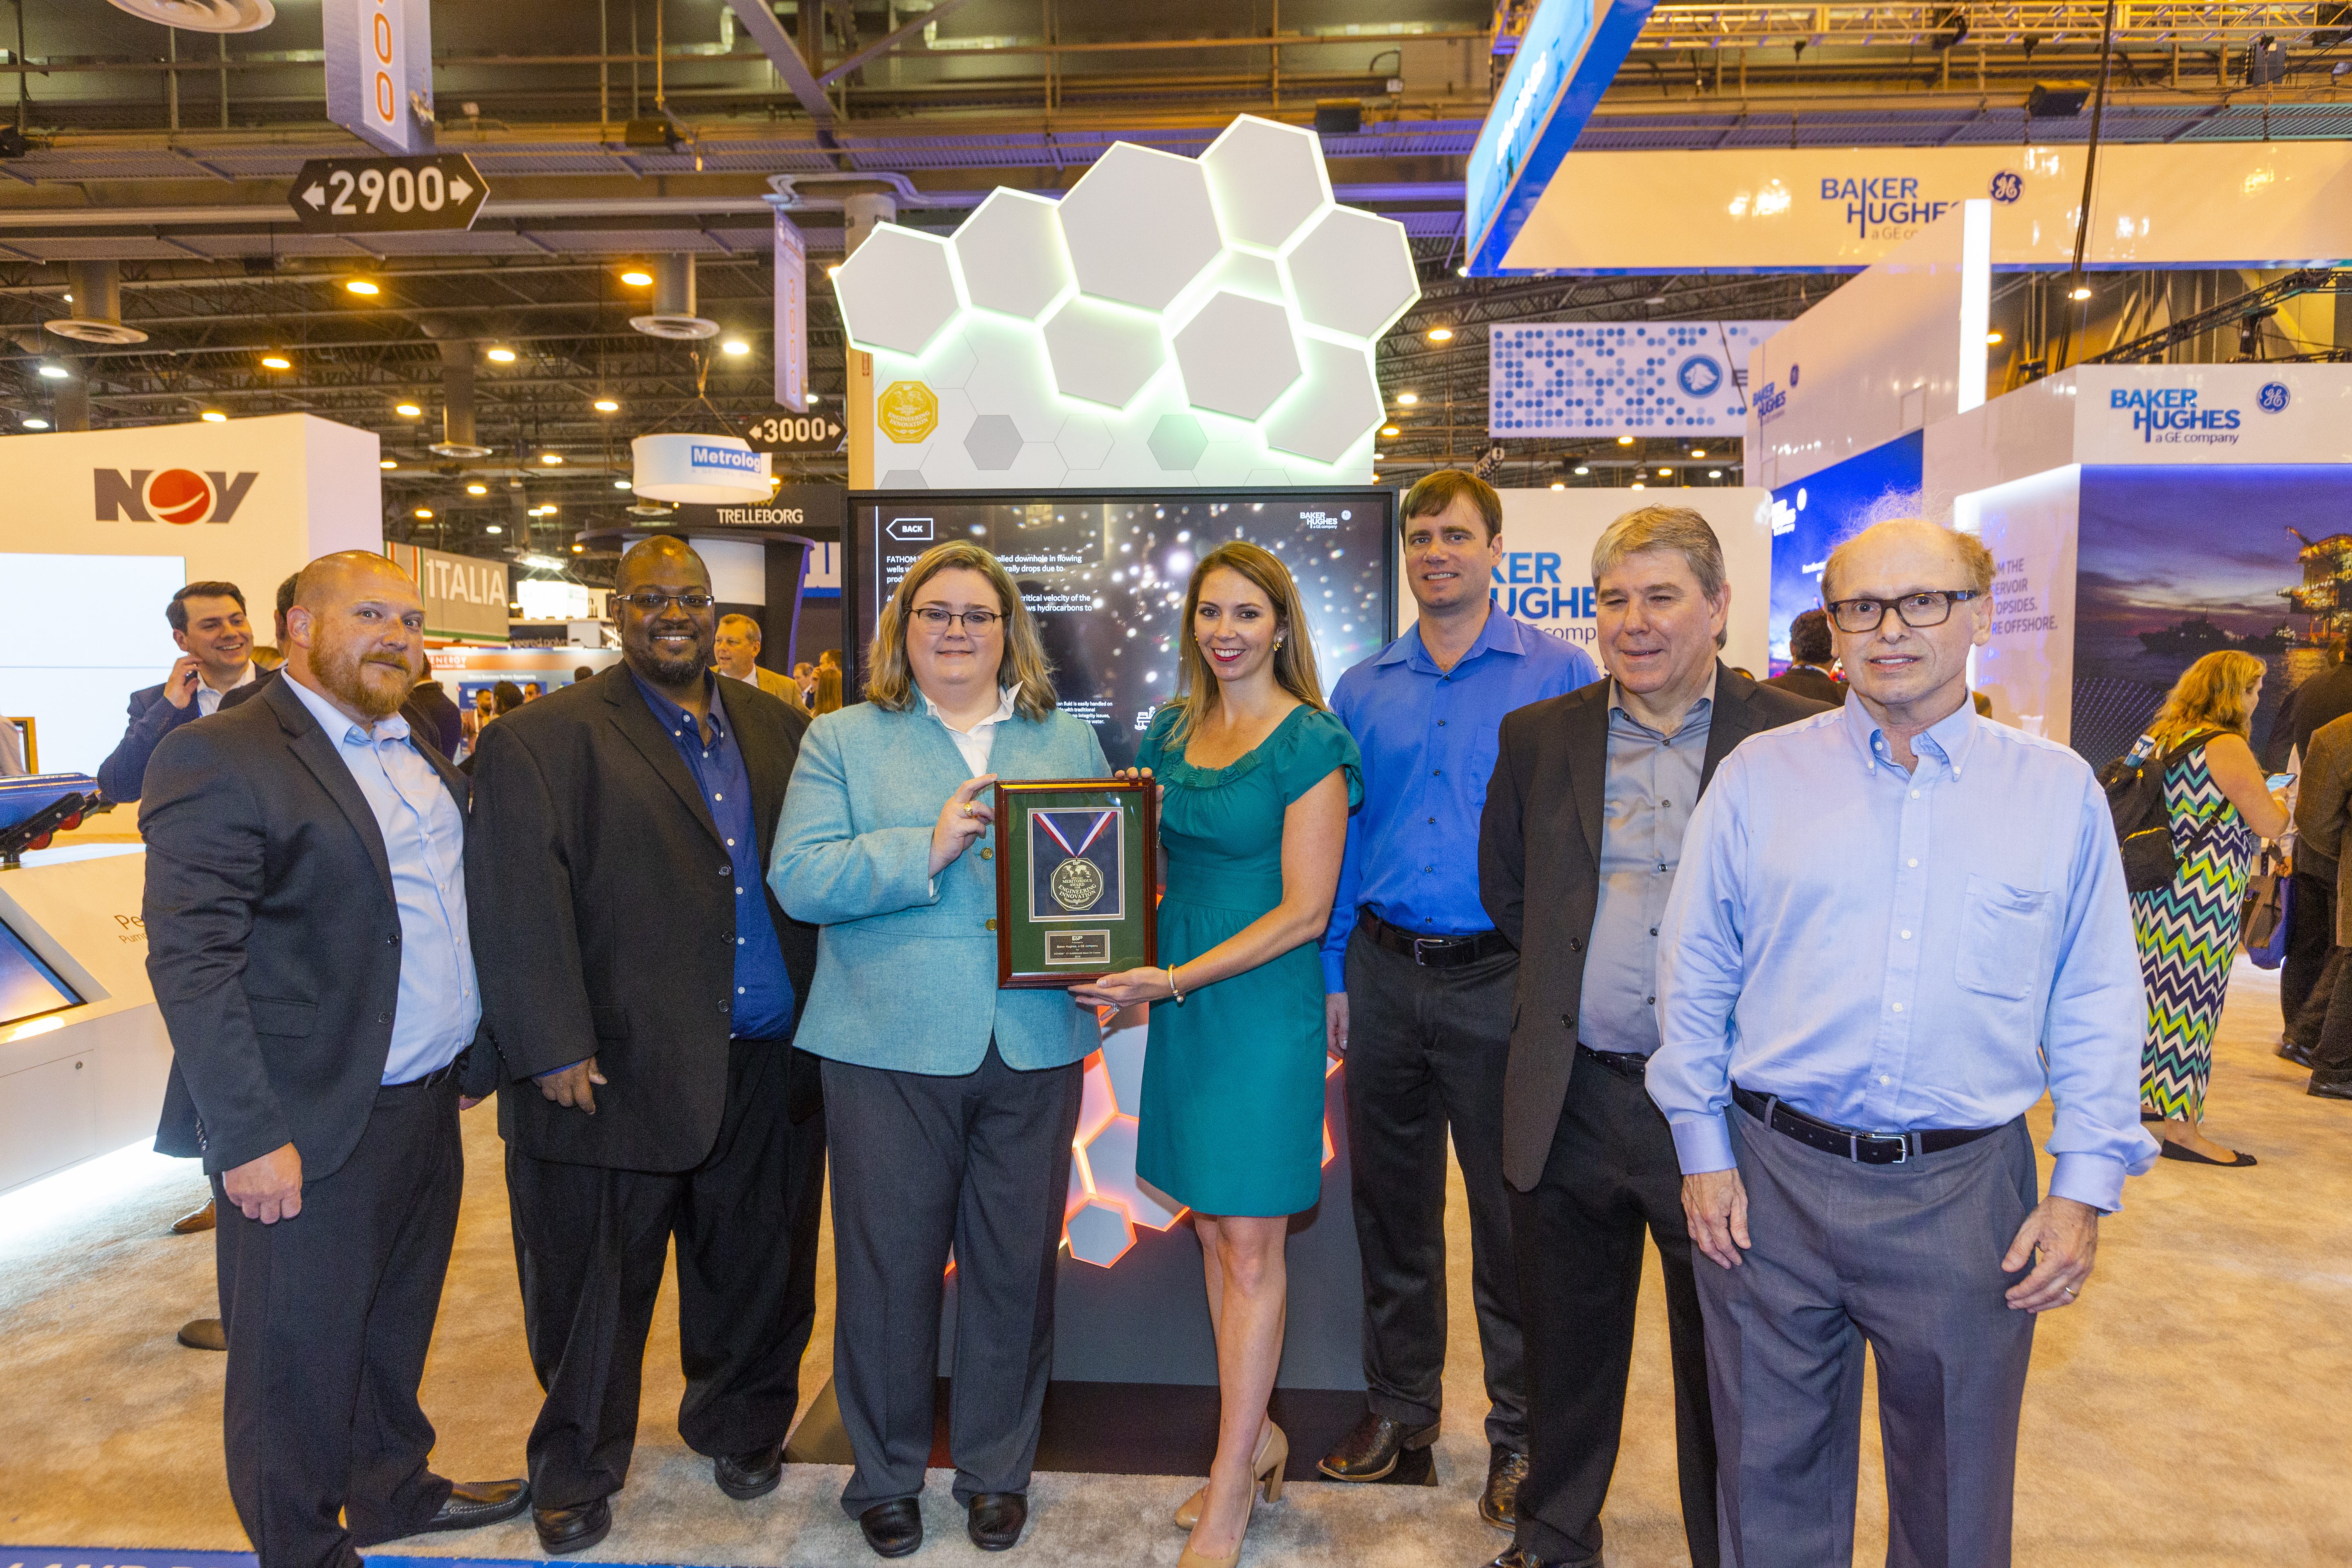 In the IOR/EOR/remediation category, the FATHOM XT SUBSEA226 Black Oil Foamer from Baker Hughes, a GE company, garnered the award. Pictured from left to right are Tim Garza, James Outlaw, E&P's Jennifer Presley, Bailey Donovan, Justin Kuzniarek, Paul Stead and Scott Lehrer.